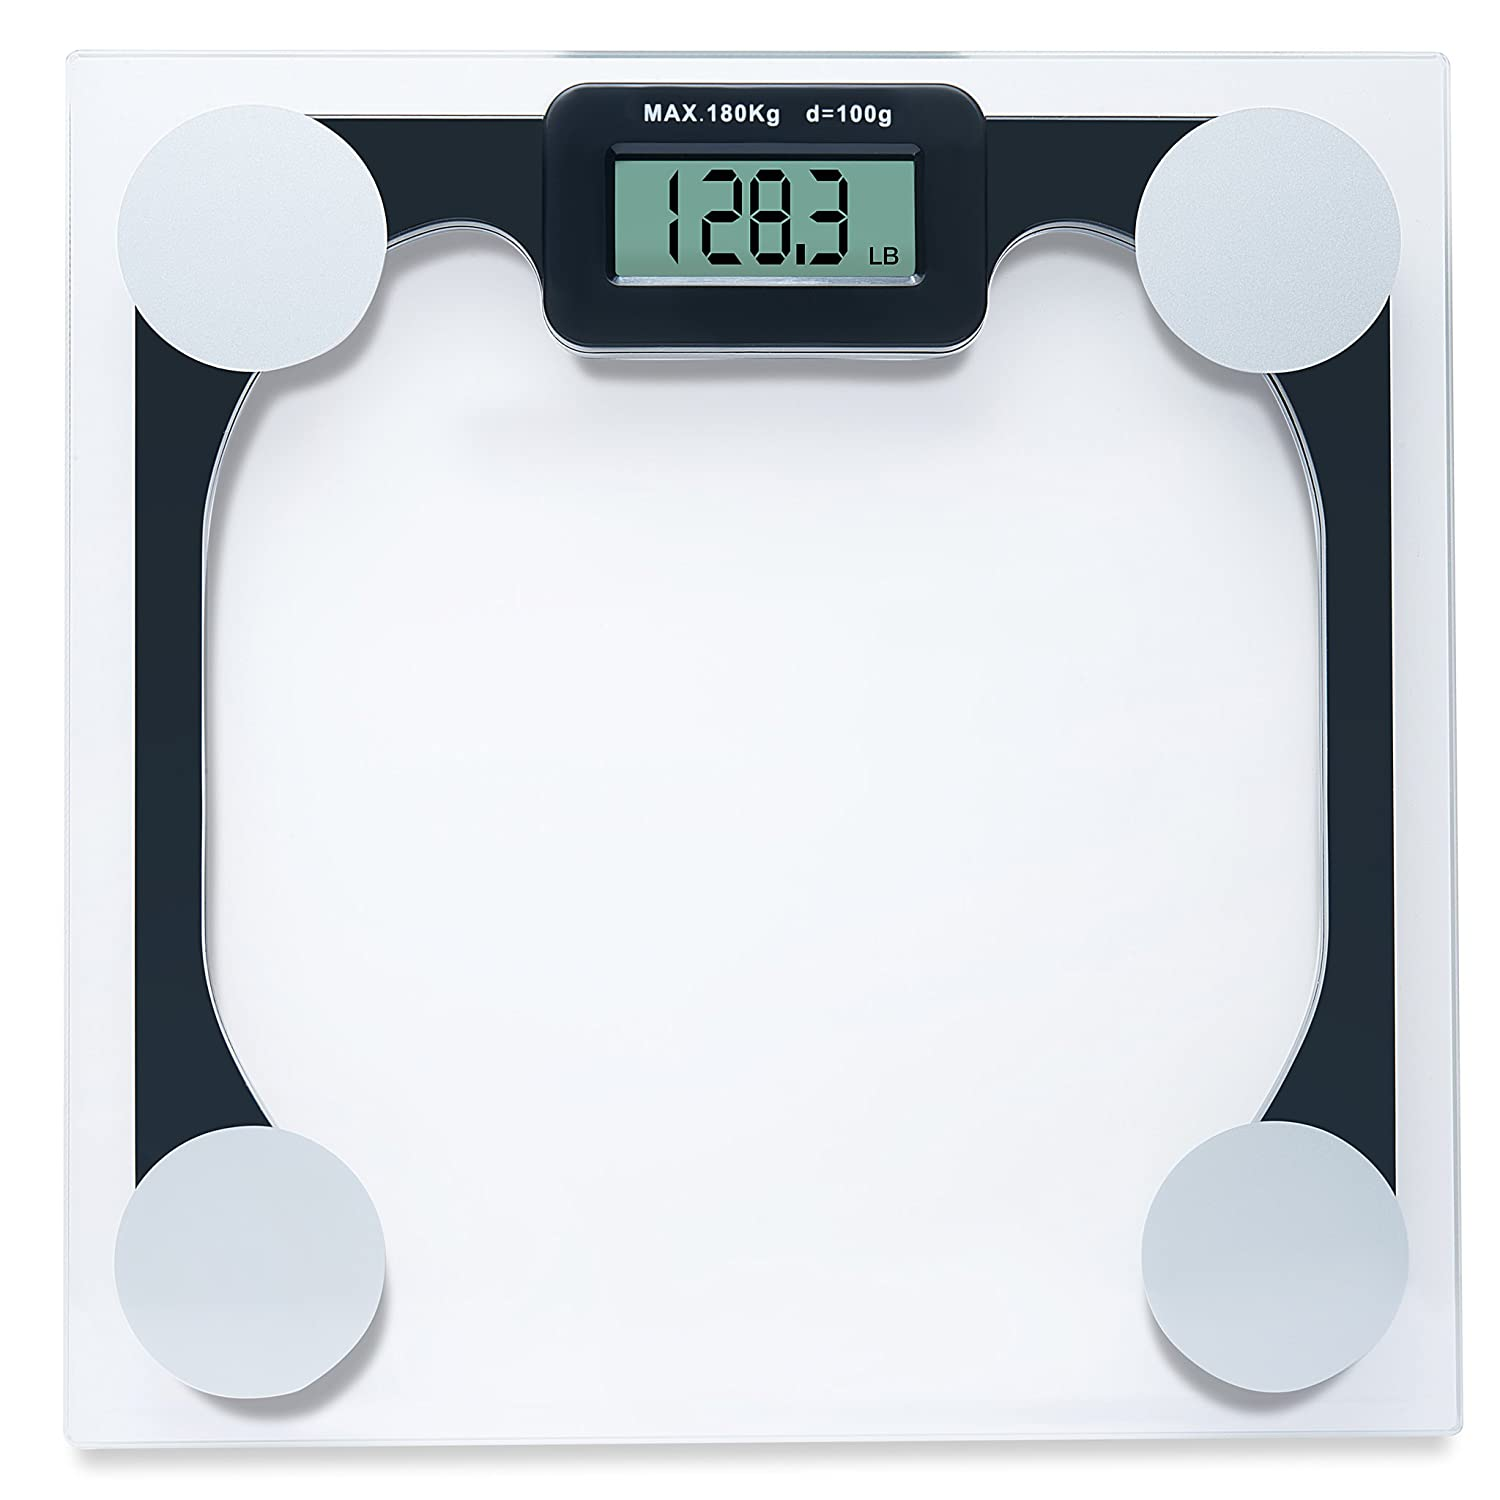 weighing scale - Modern digital scale High quality bathroom scales 400 lb. Capacity weight scale has the Step-On Technology Sagler 4332442951